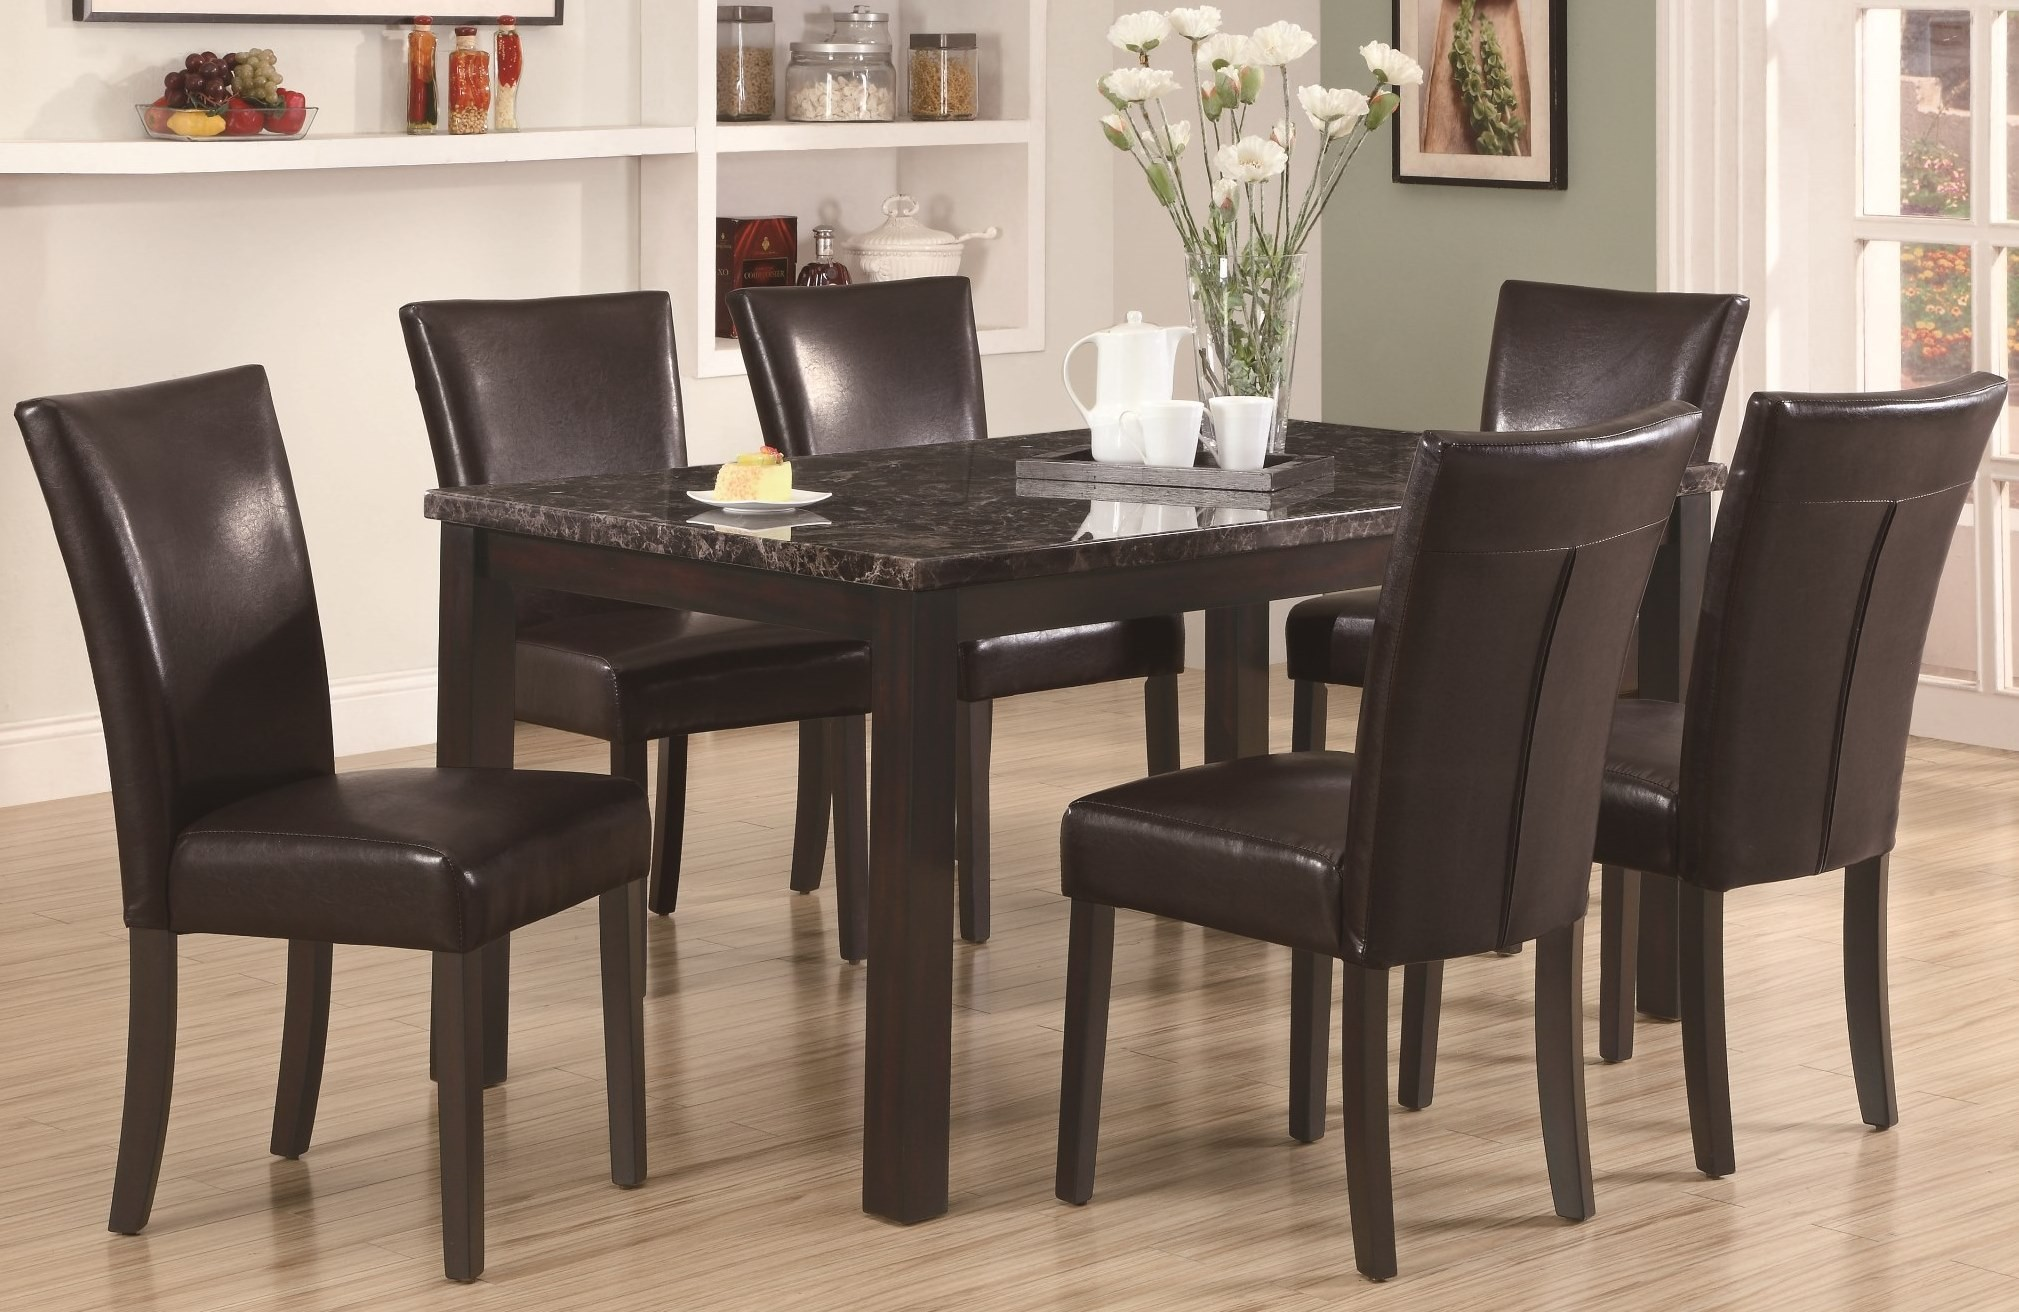 espresso dining room set 1738 dark espresso marble dining room set from monarch 1738 coleman furniture 3915